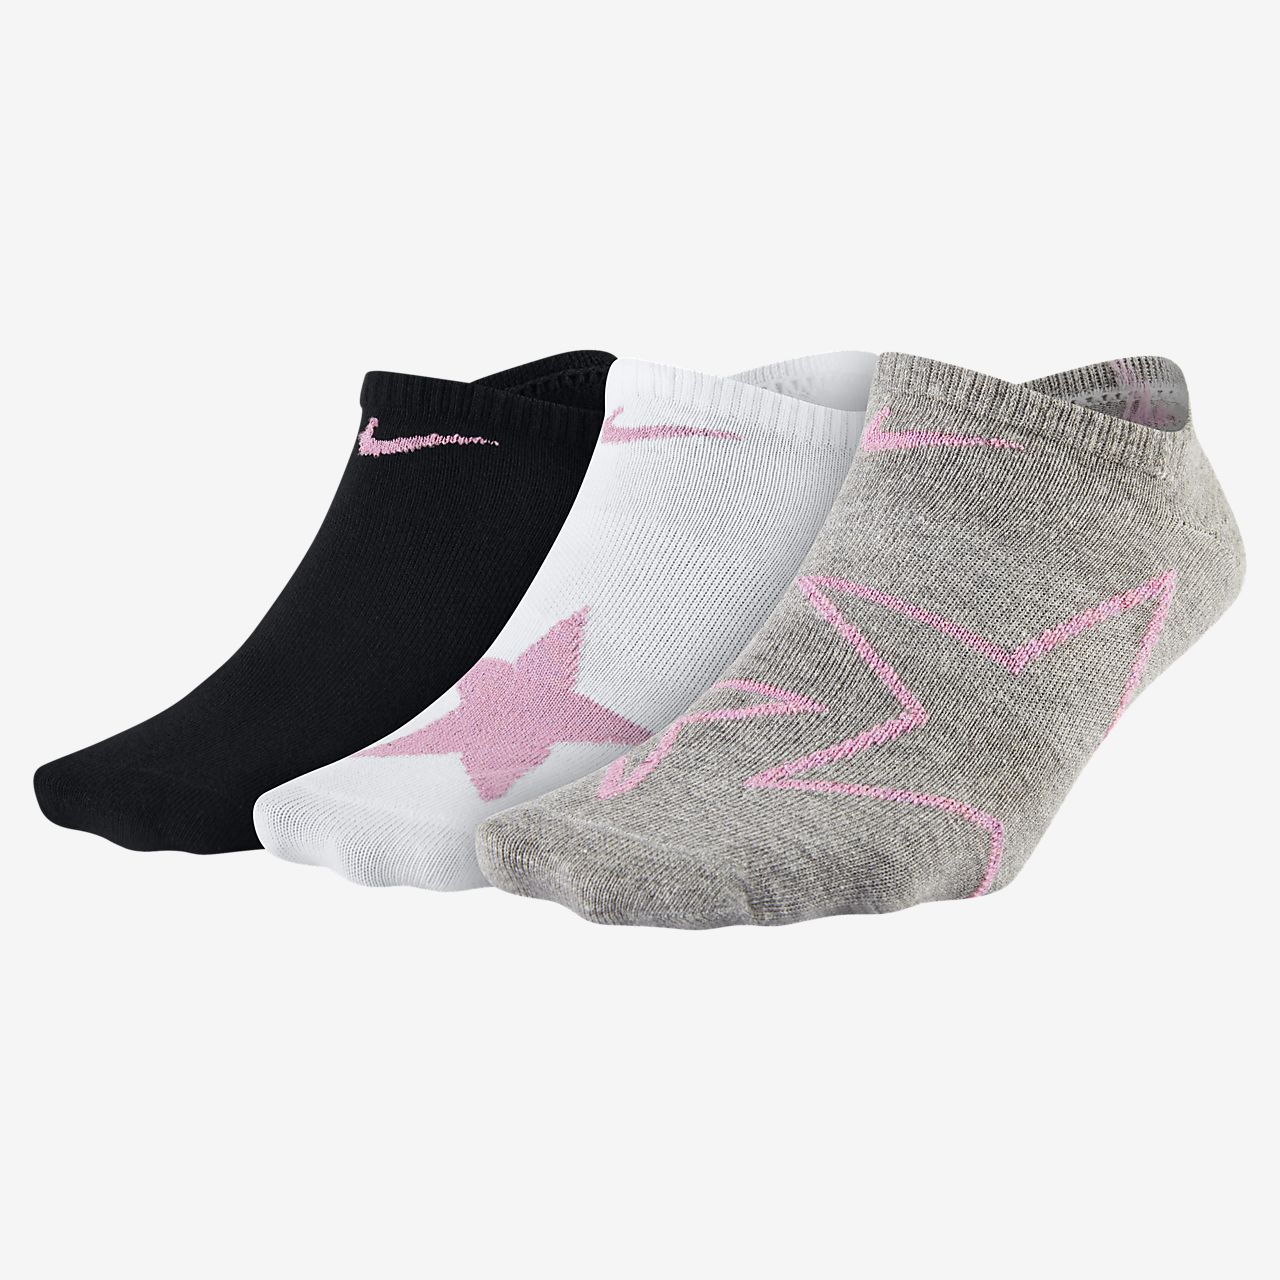 Nike Everyday Graphic No-Show Socken für ältere Kinder (3 Paar)